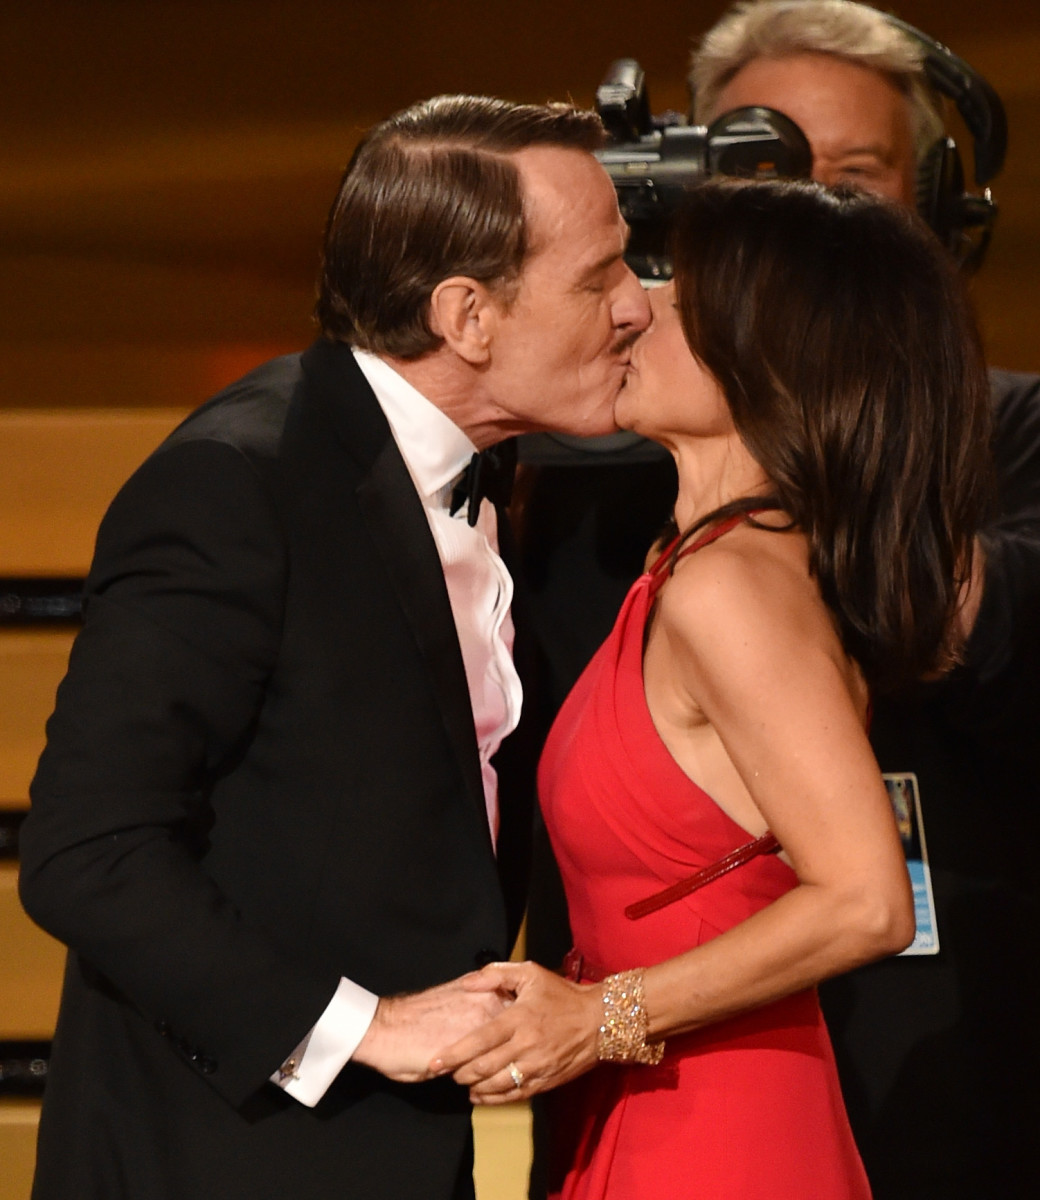 Julia Louis-Dreyfus Bryan Cranston Emmys 2014 Photo